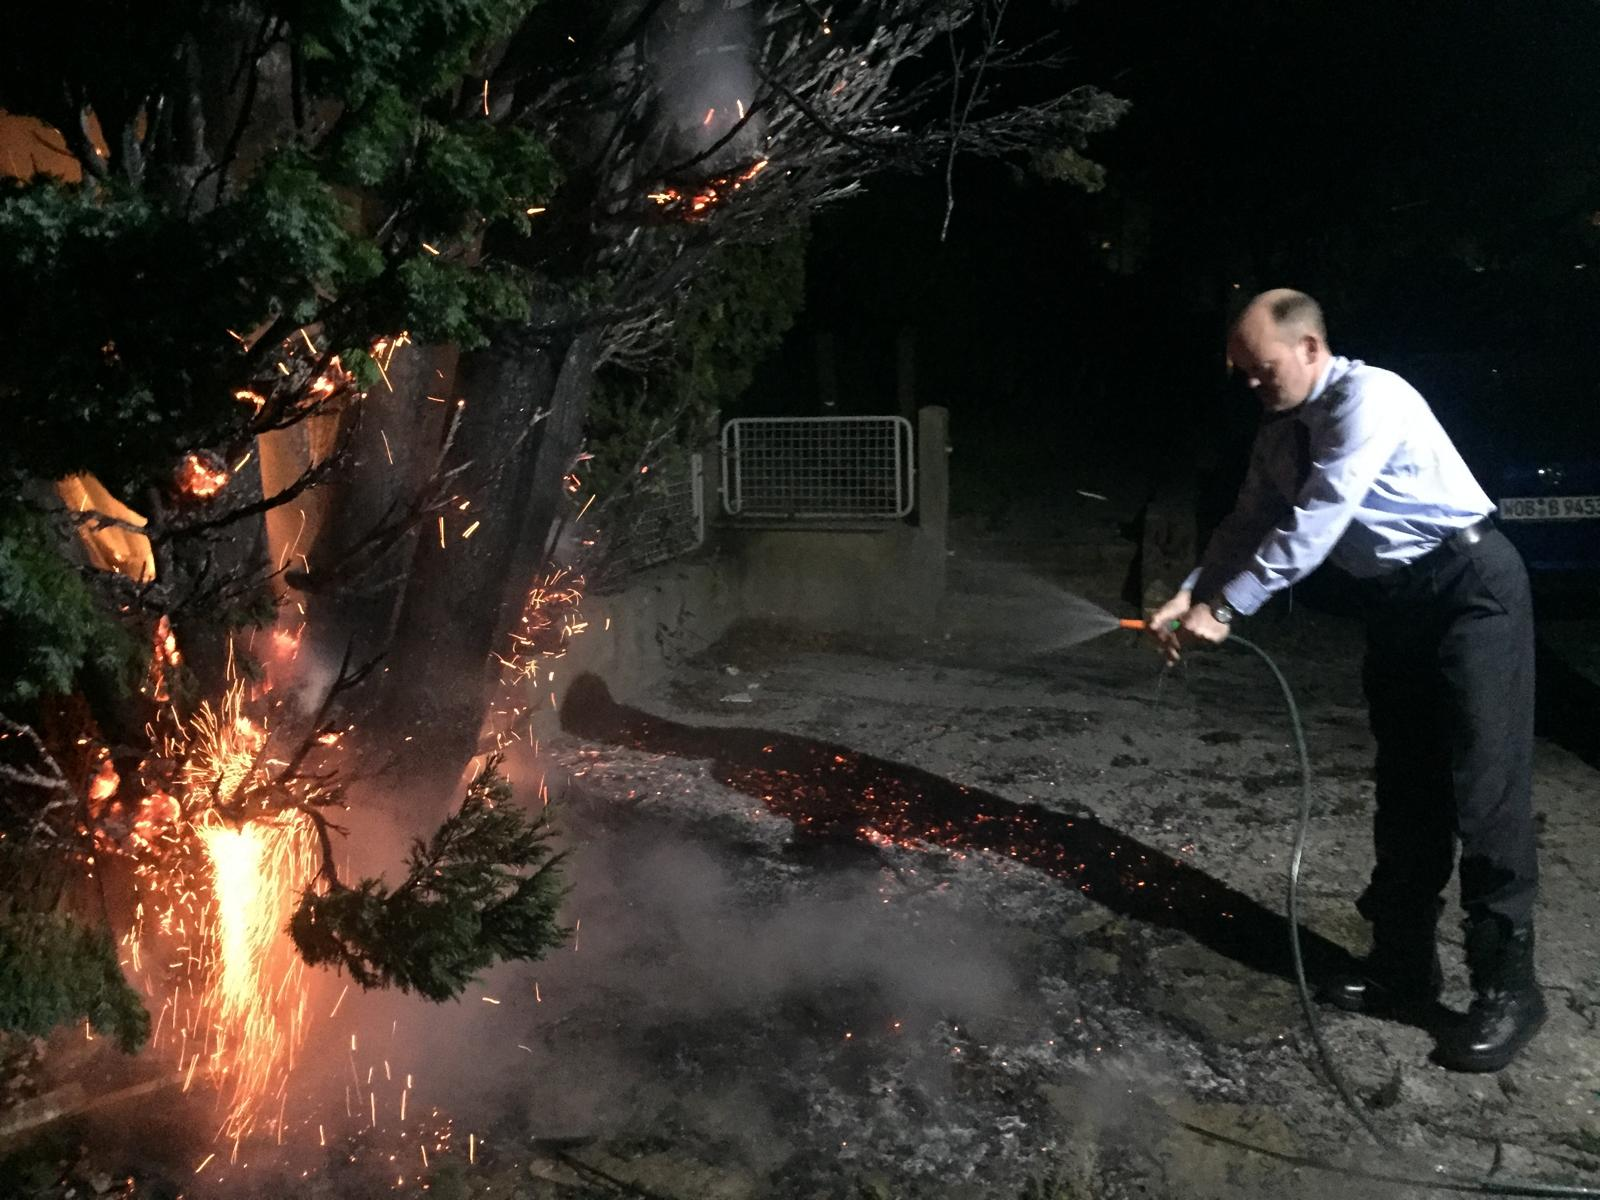 Mutig gegen die Feuersbrunst mit dem Gartenschlauch